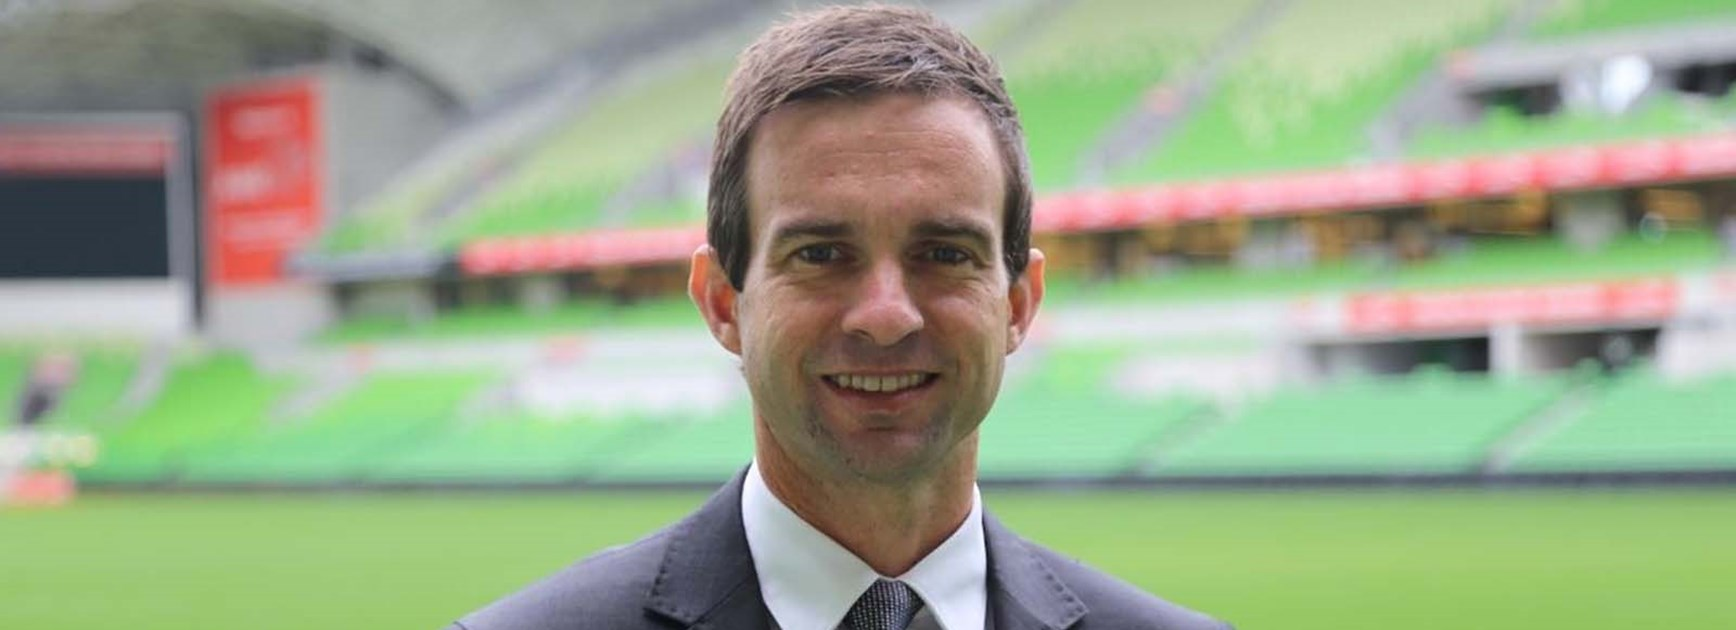 Dave Donaghy has been appointed Melbourne Storm's next Chief Executive Officer.